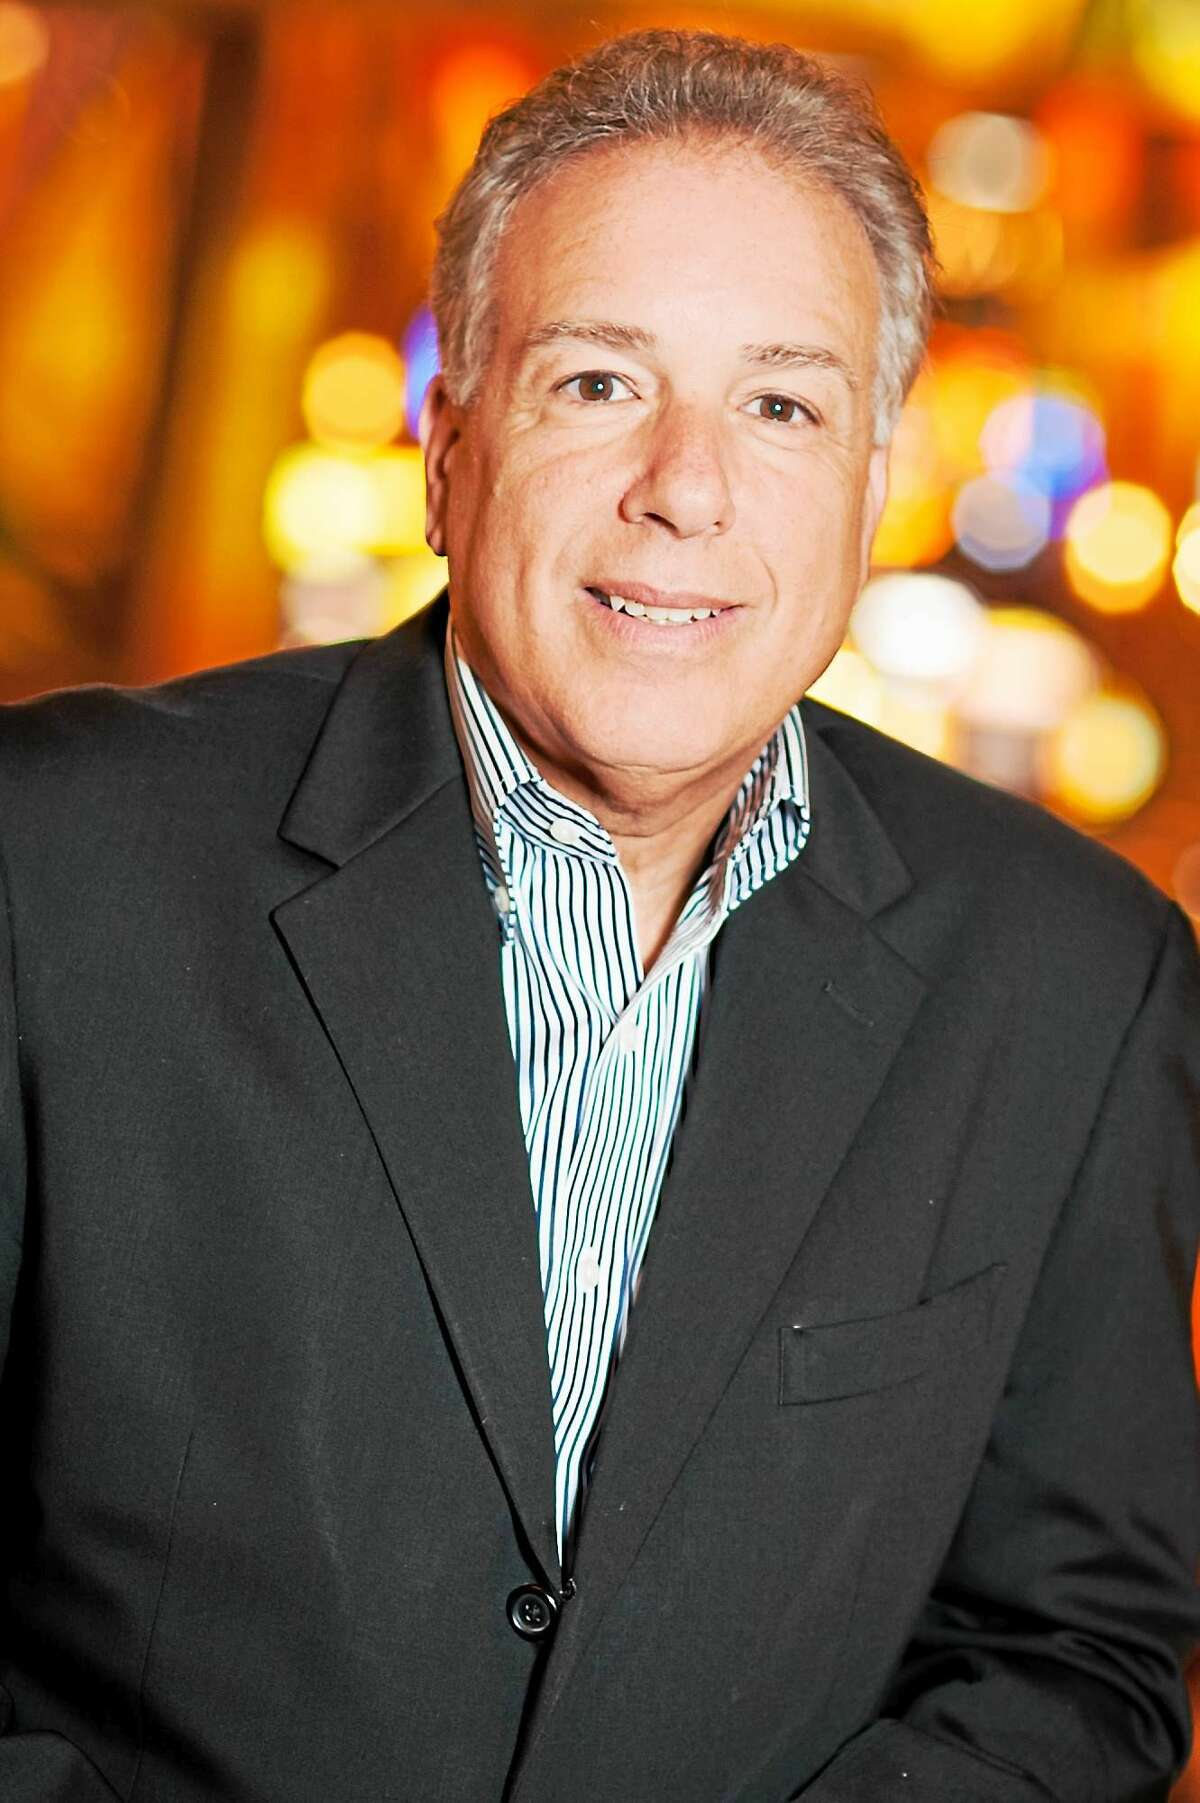 Mohegan Sun Tom Cantone, Mohegan's vice president of sports and entertainment.